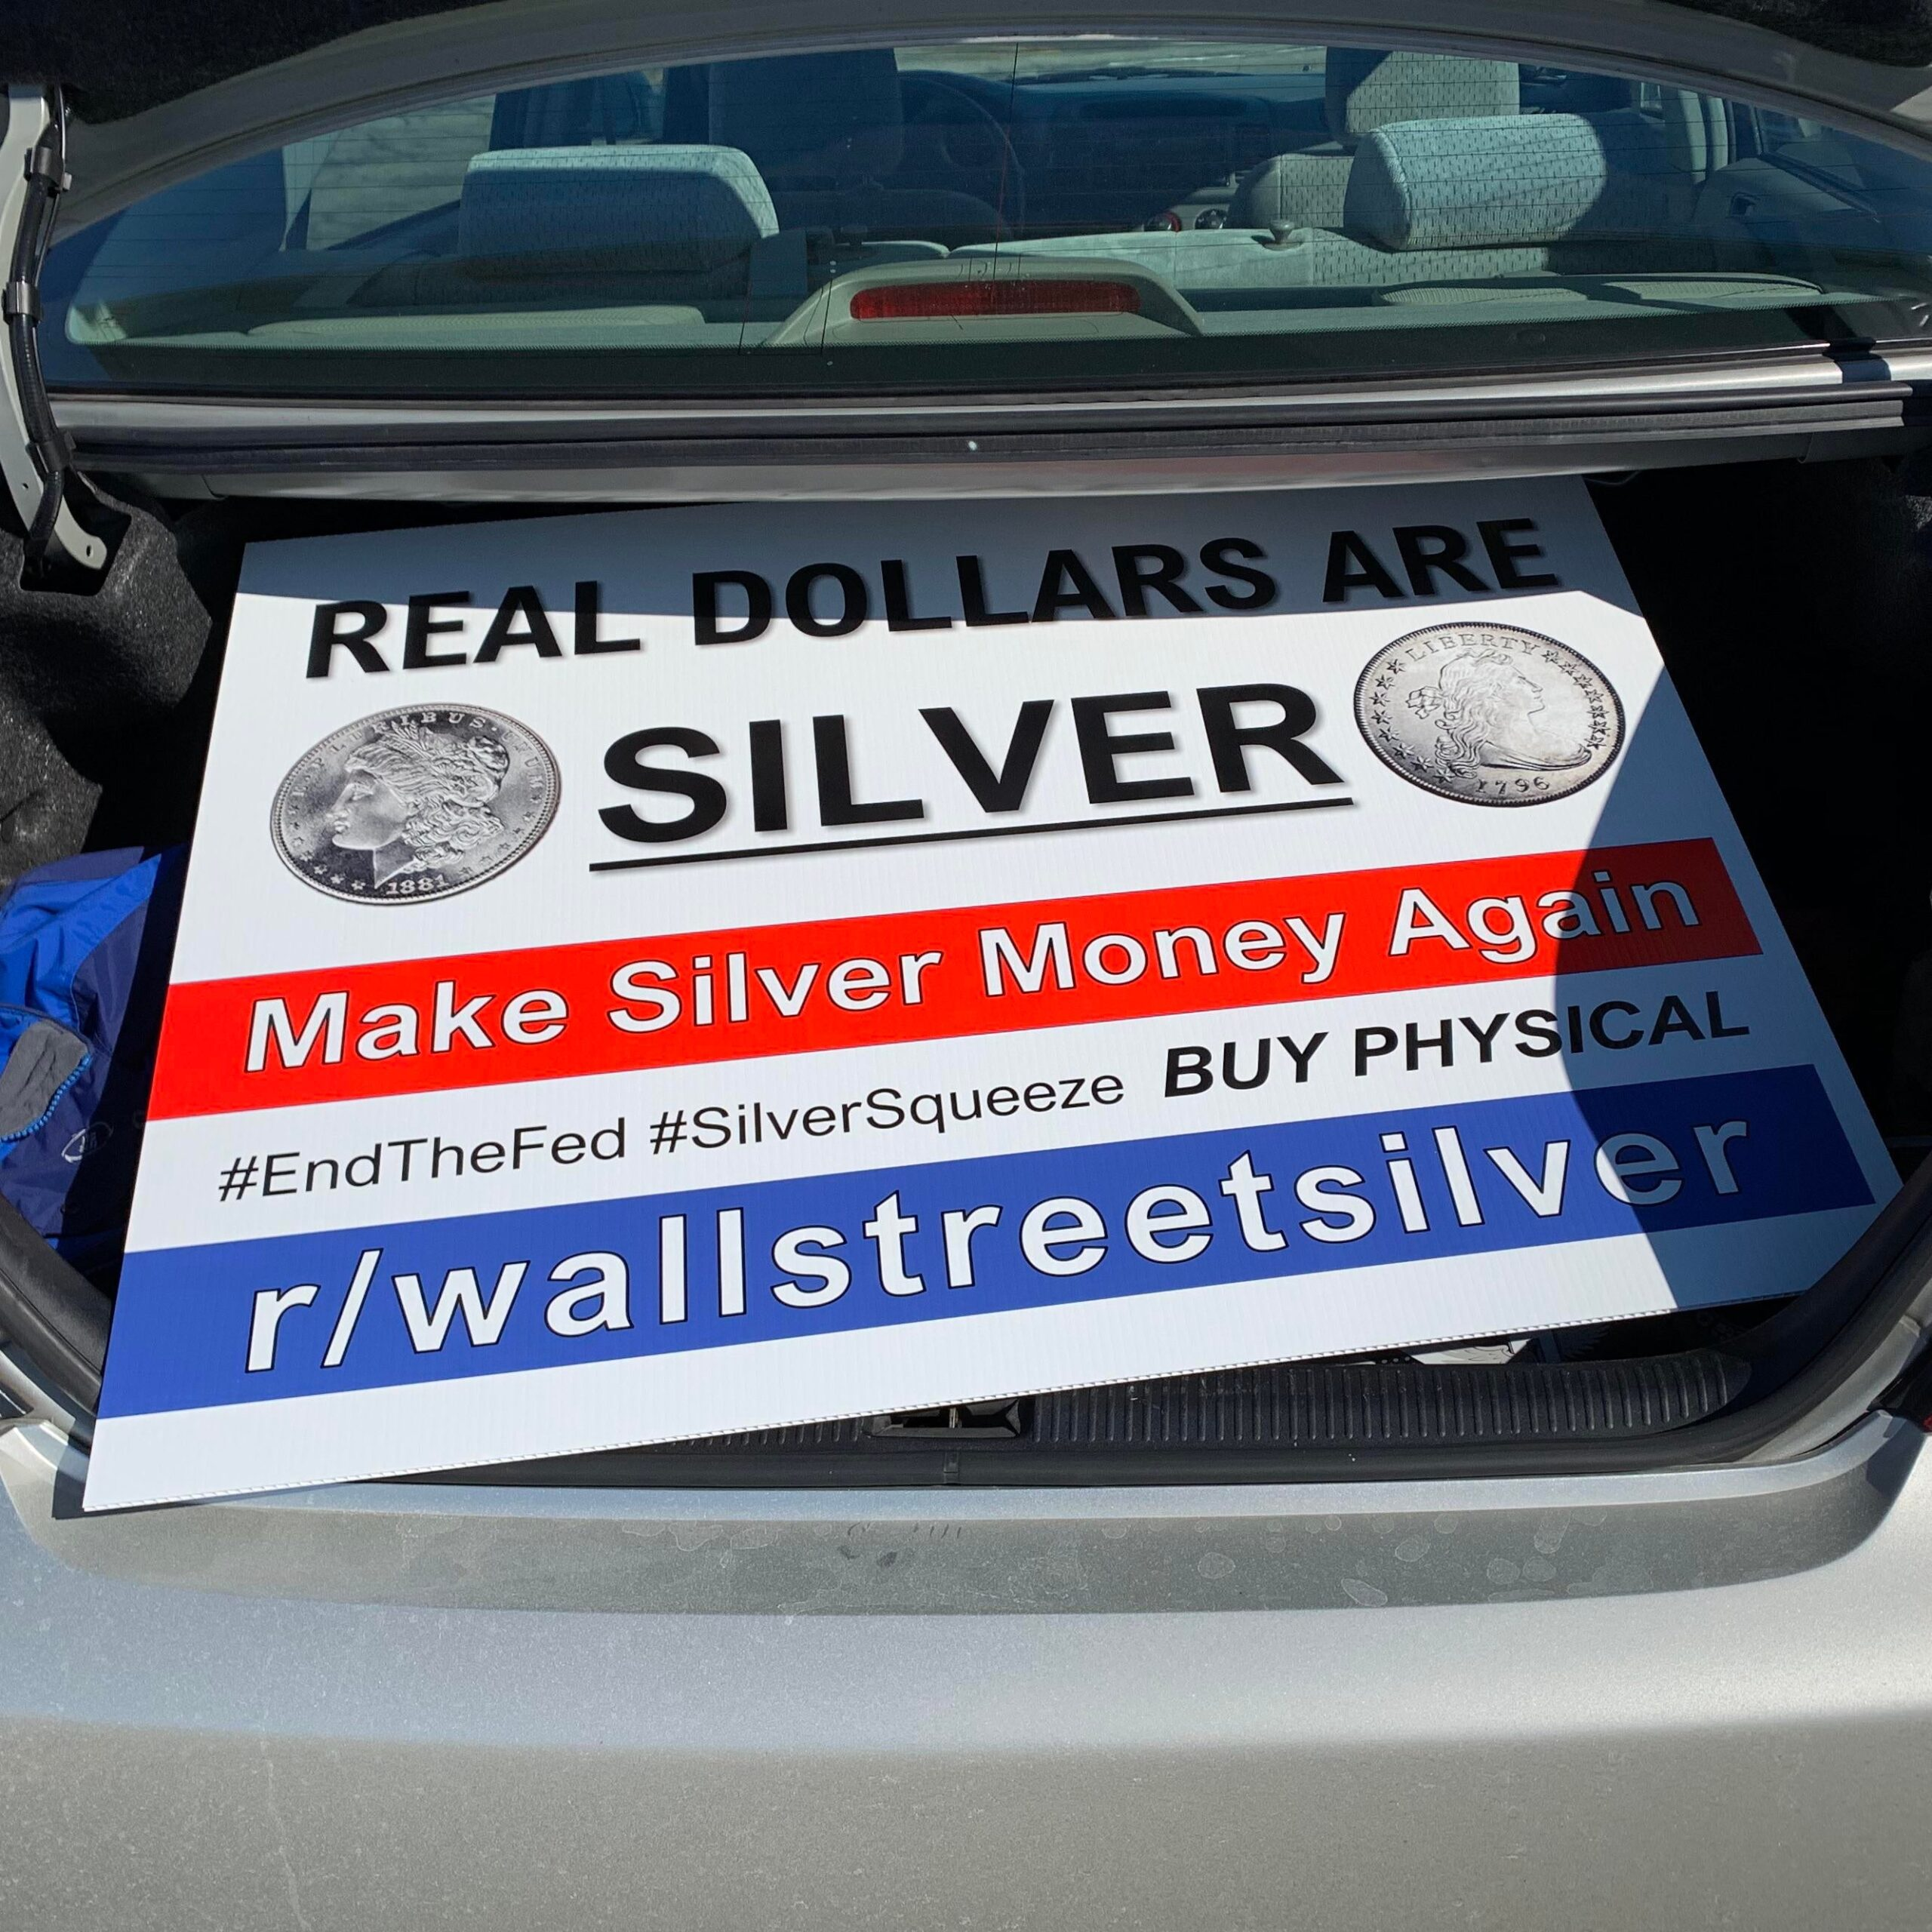 My fellow apes… Had to fork over 70 Federal Reserve Bloats for this baby! (You KNOW EXACTLY how much silver that could have got me.) WORTH IT! To be continued…